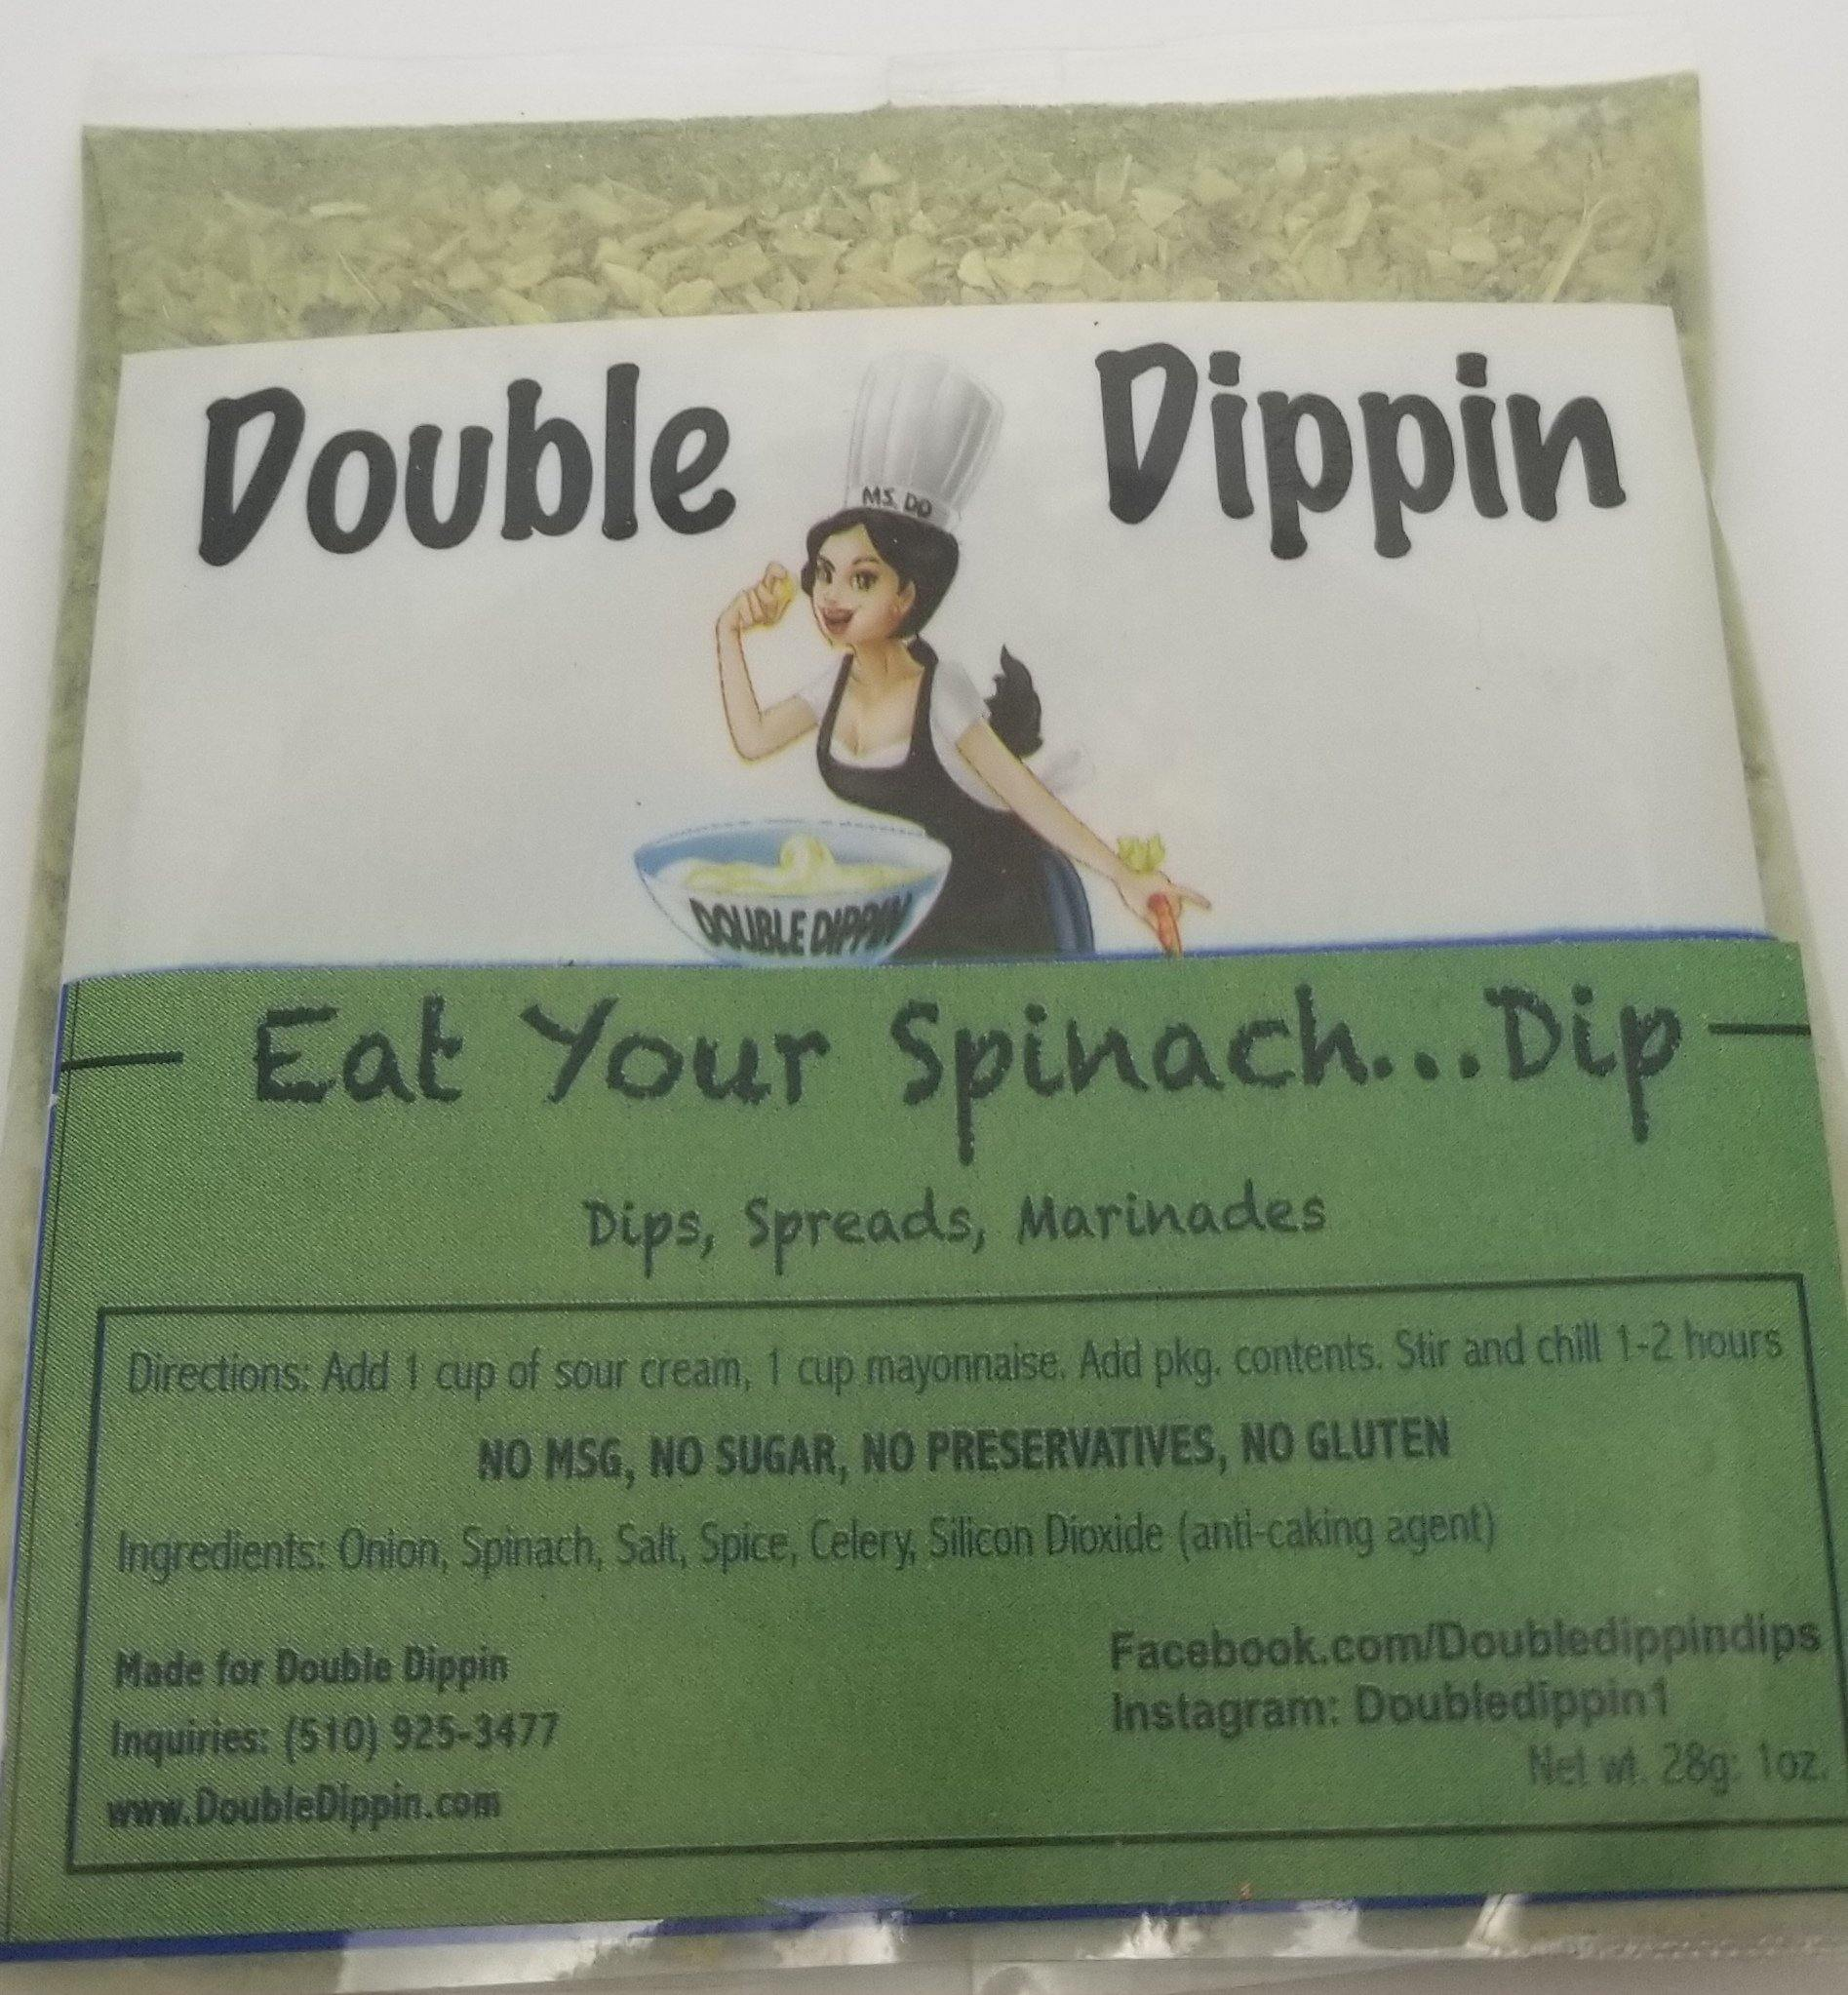 Buy Dips Online - Gluten free dips Eat Yo' Spinach.... Dip - DoubleDippin